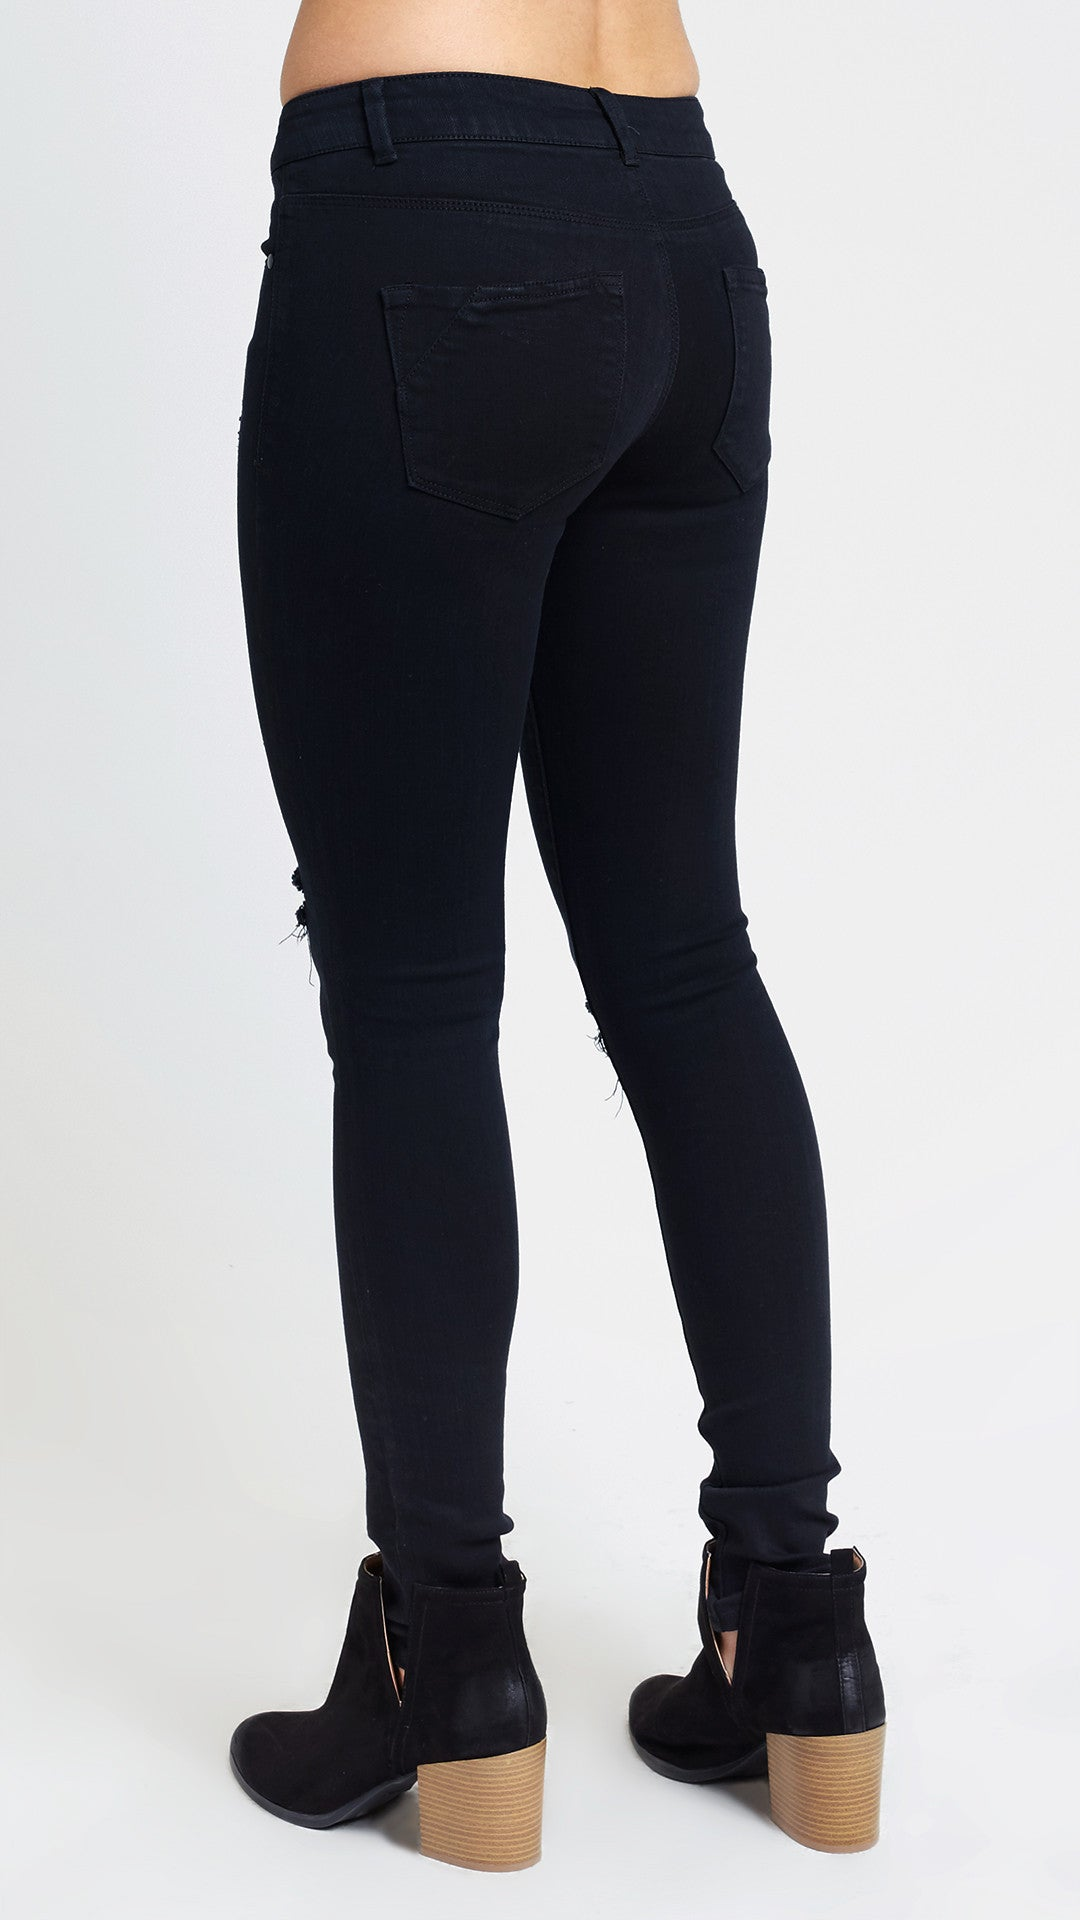 Buy men's jeans including low rise jeans, boot cut, mid rise jeans, button fly jeans and more from Old Navy.